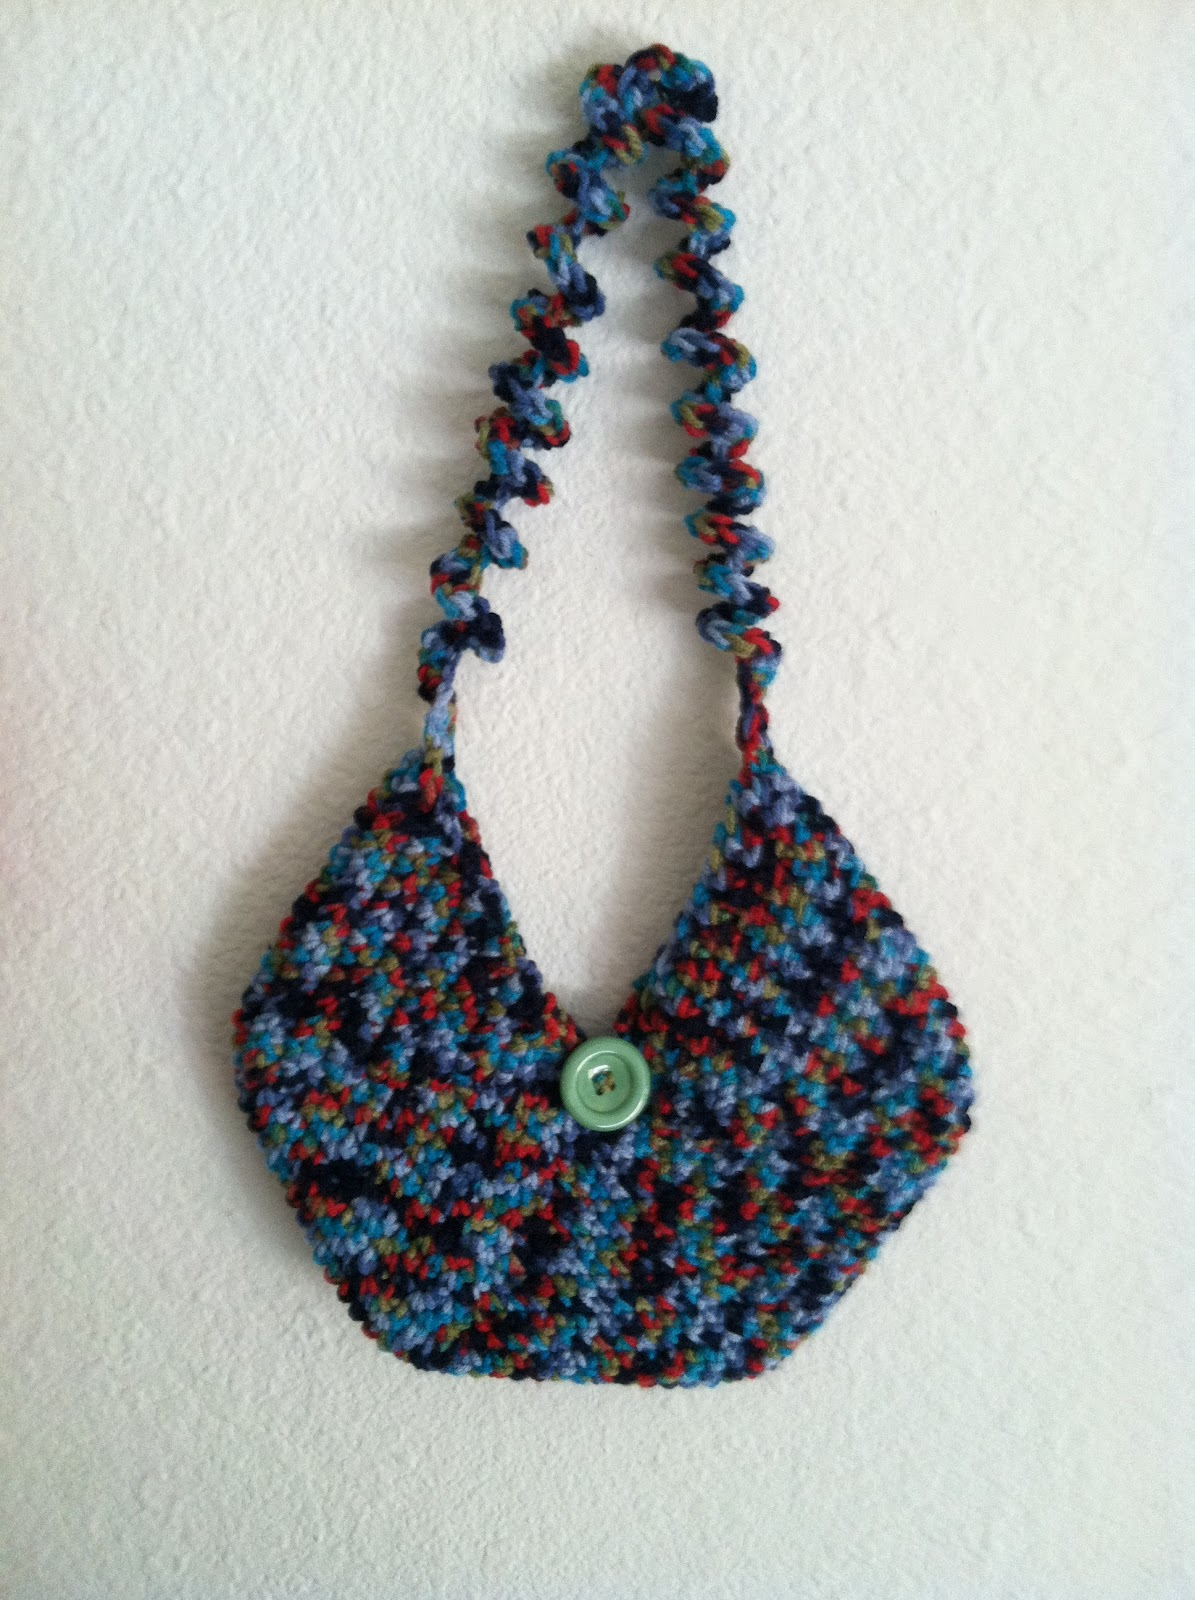 Yarn Bag Pattern : another circular purse, with a slight modification to my last purse ...